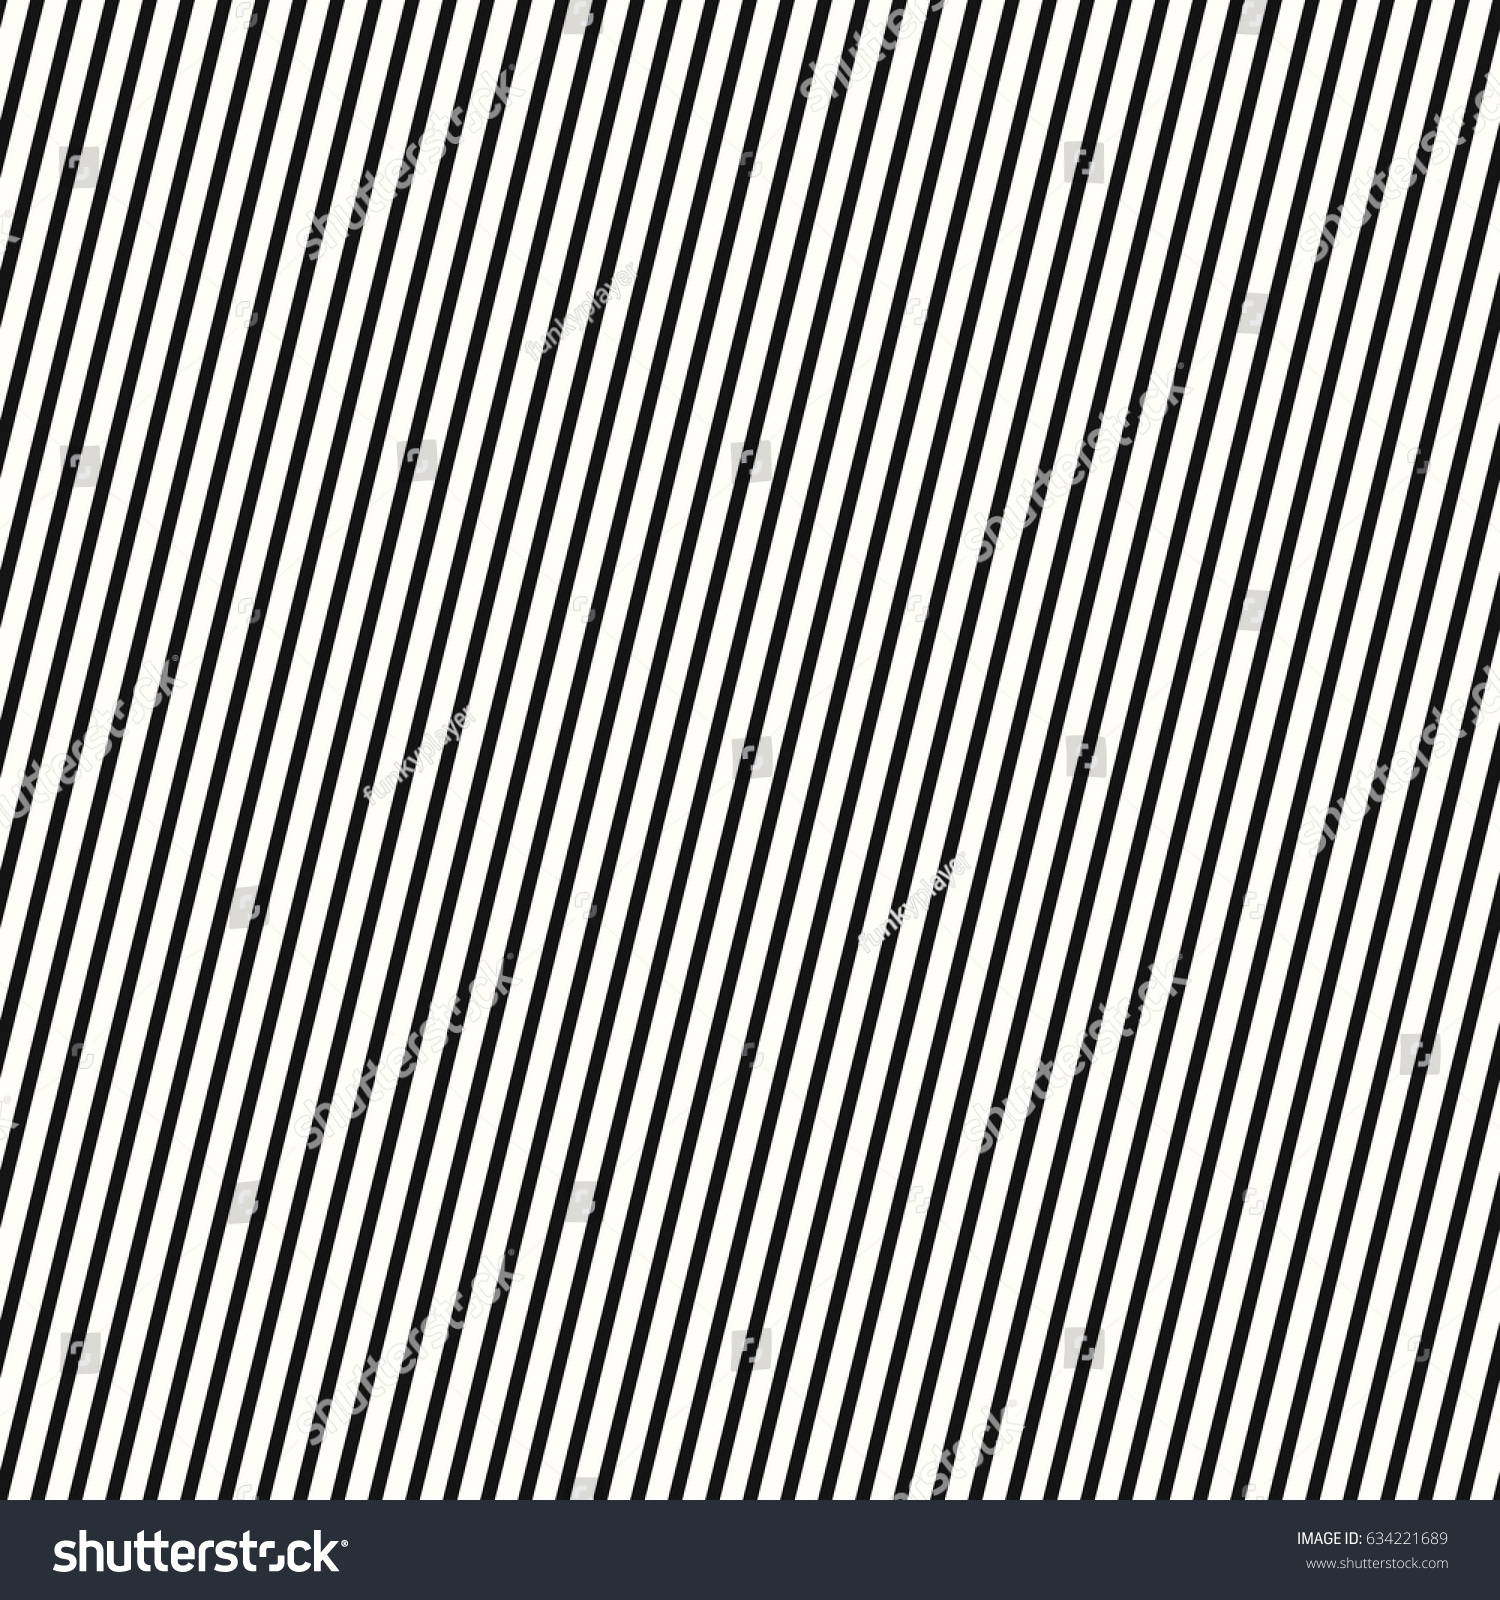 Black diagonal lines background striped wallpaper seamless surface pattern design with symmetrical linear ornament